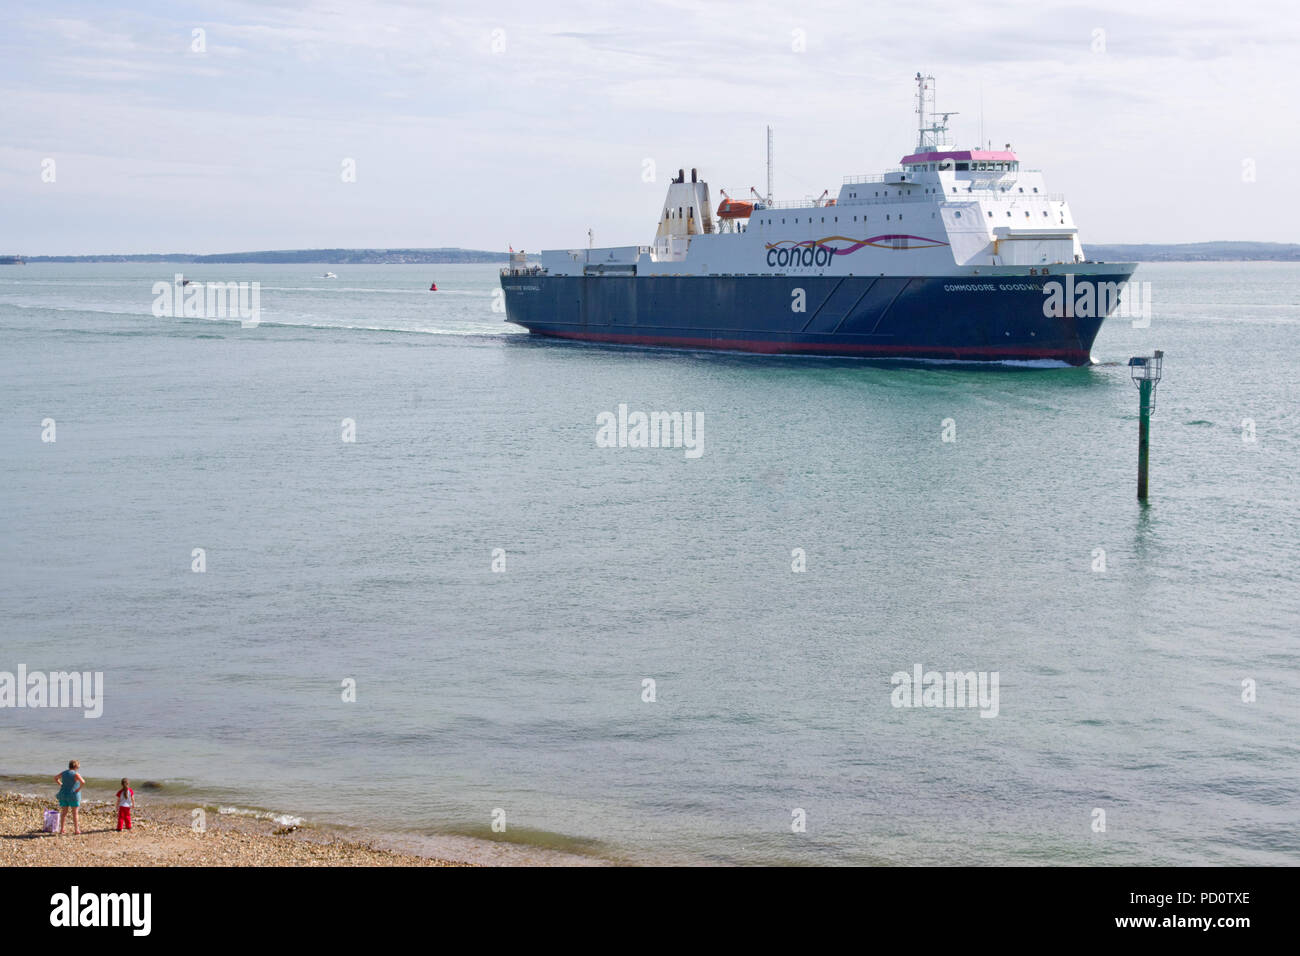 Commodore Goodwill roll on roll off ferry - Stock Image